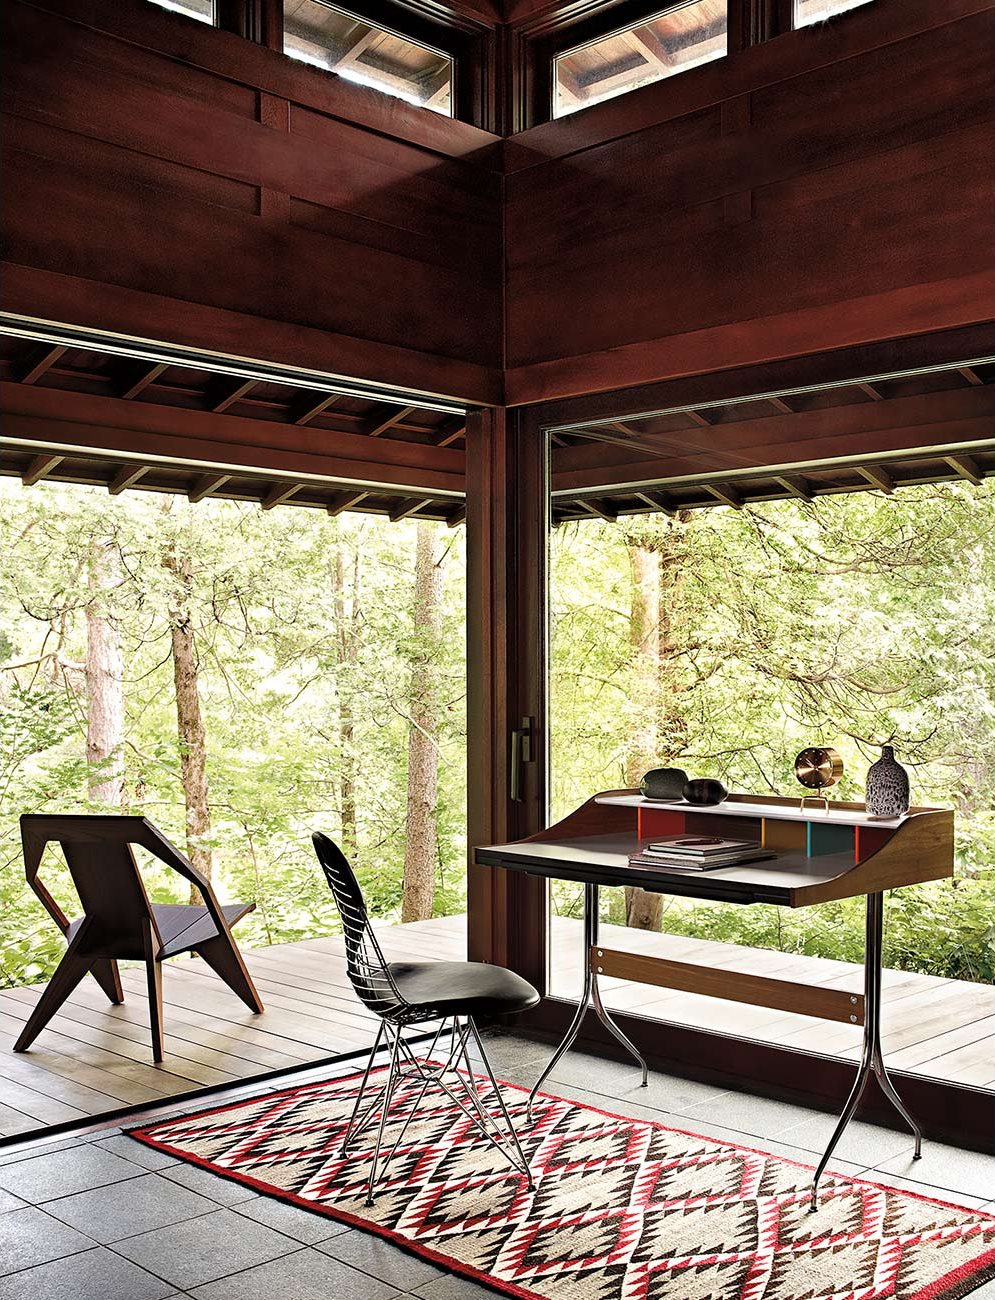 nelson swag leg desk by george nelson for herman miller  up interiors - nelson swag leg desk adjustable glides attic workspace with a panoramicwoods view © francois dischinger